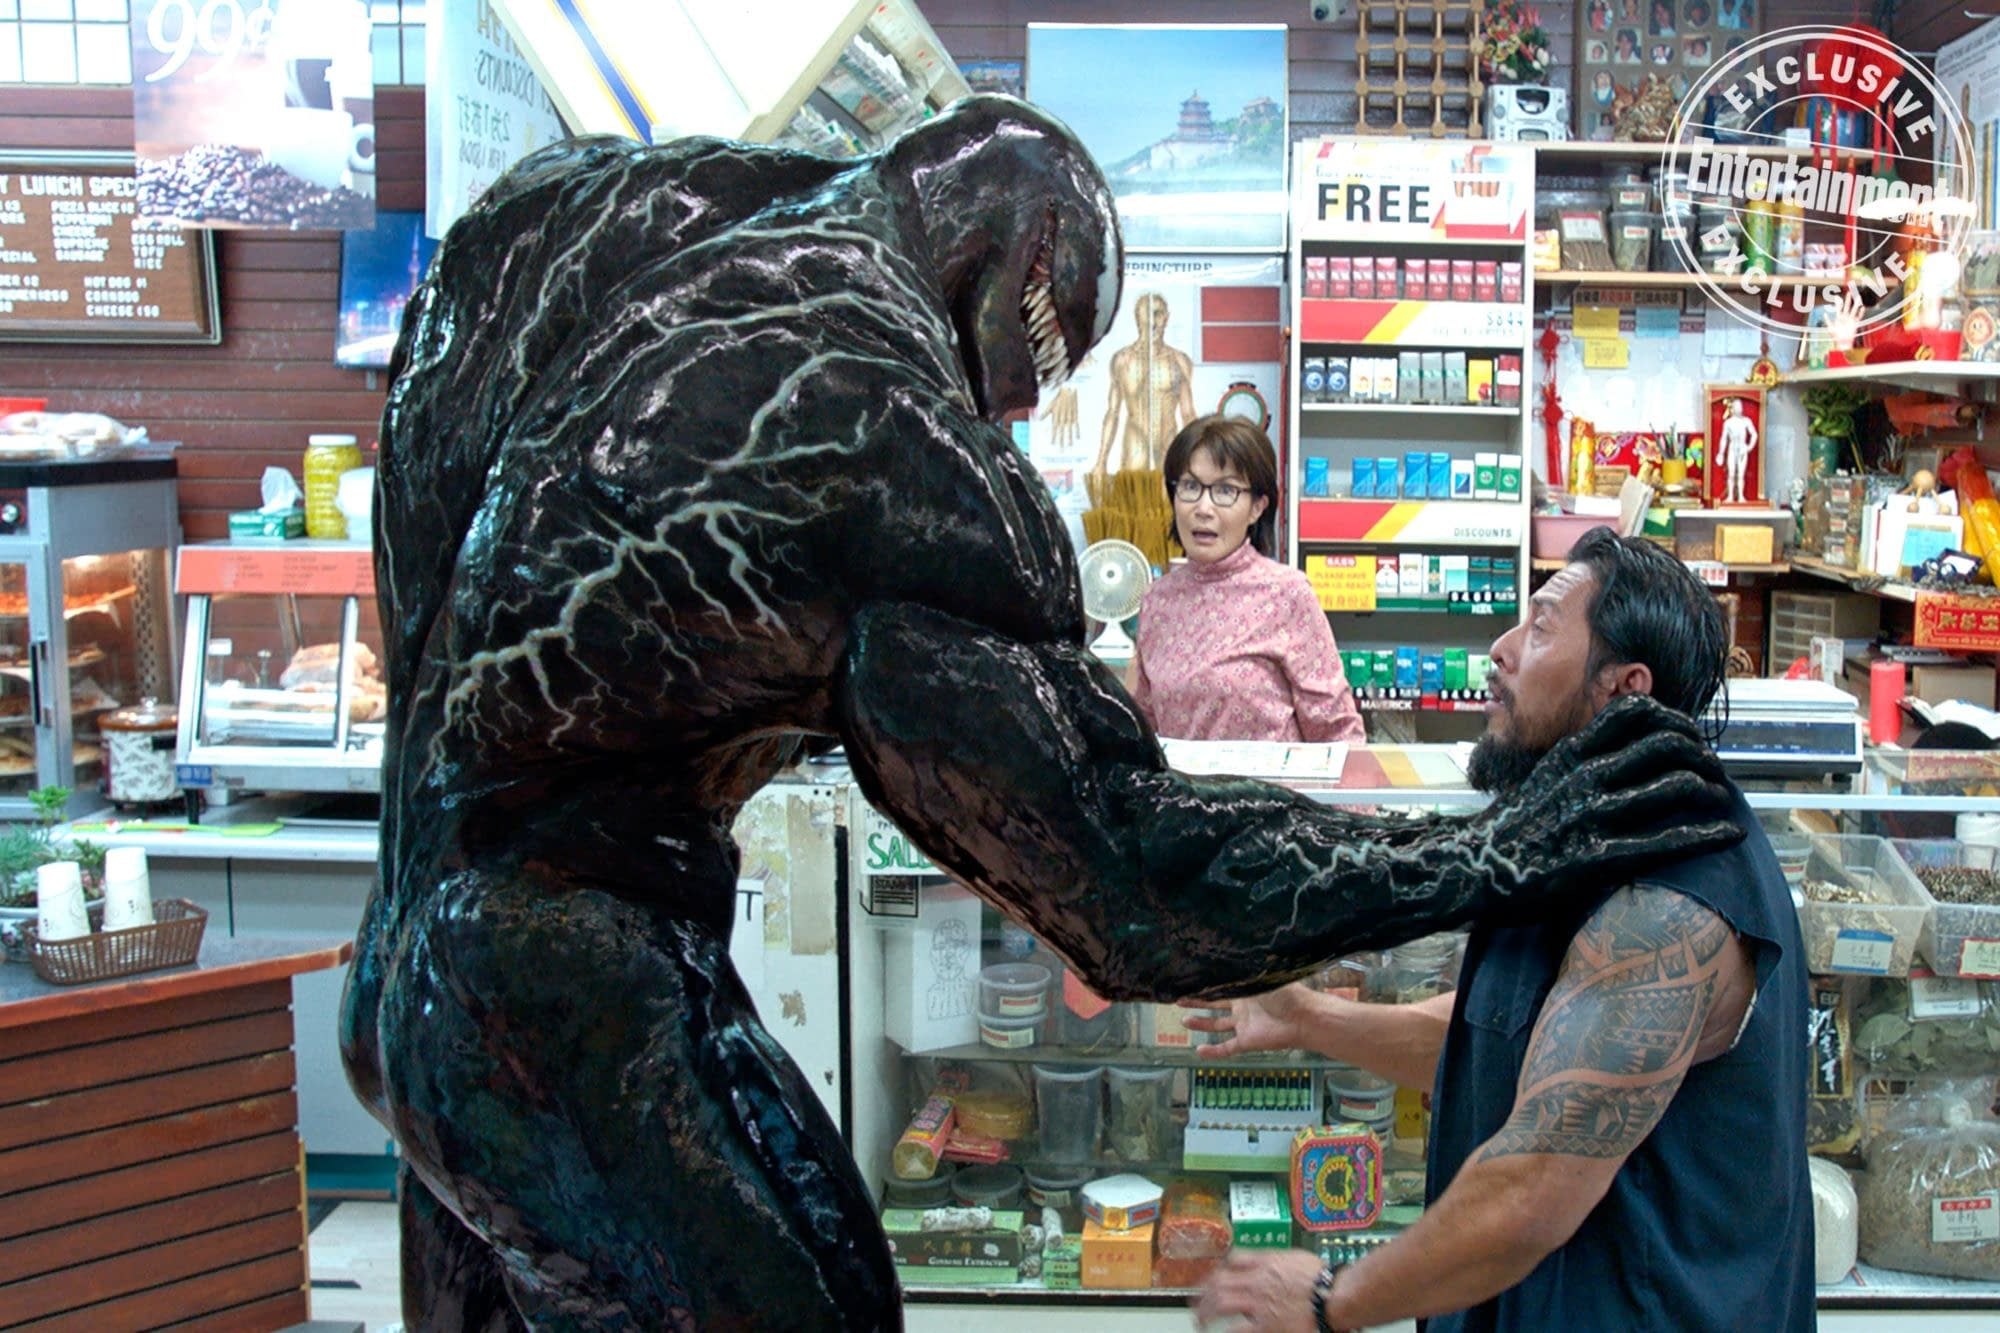 New Image from Venom Shows off the Details of the Monster